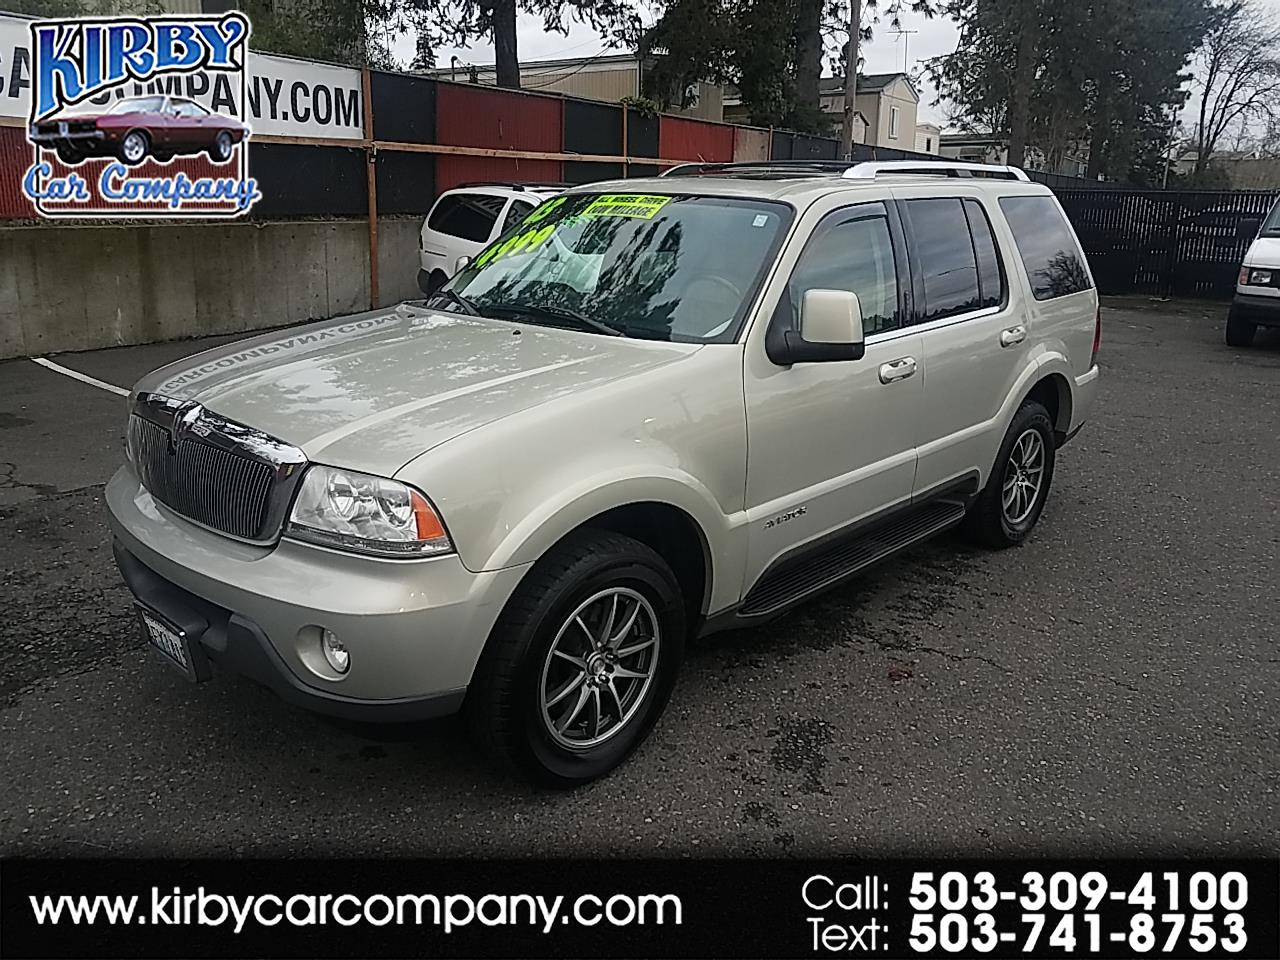 2003 Lincoln Aviator Luxury AWD LO MILES! EVERY OPTION! CLEAN TITLE!